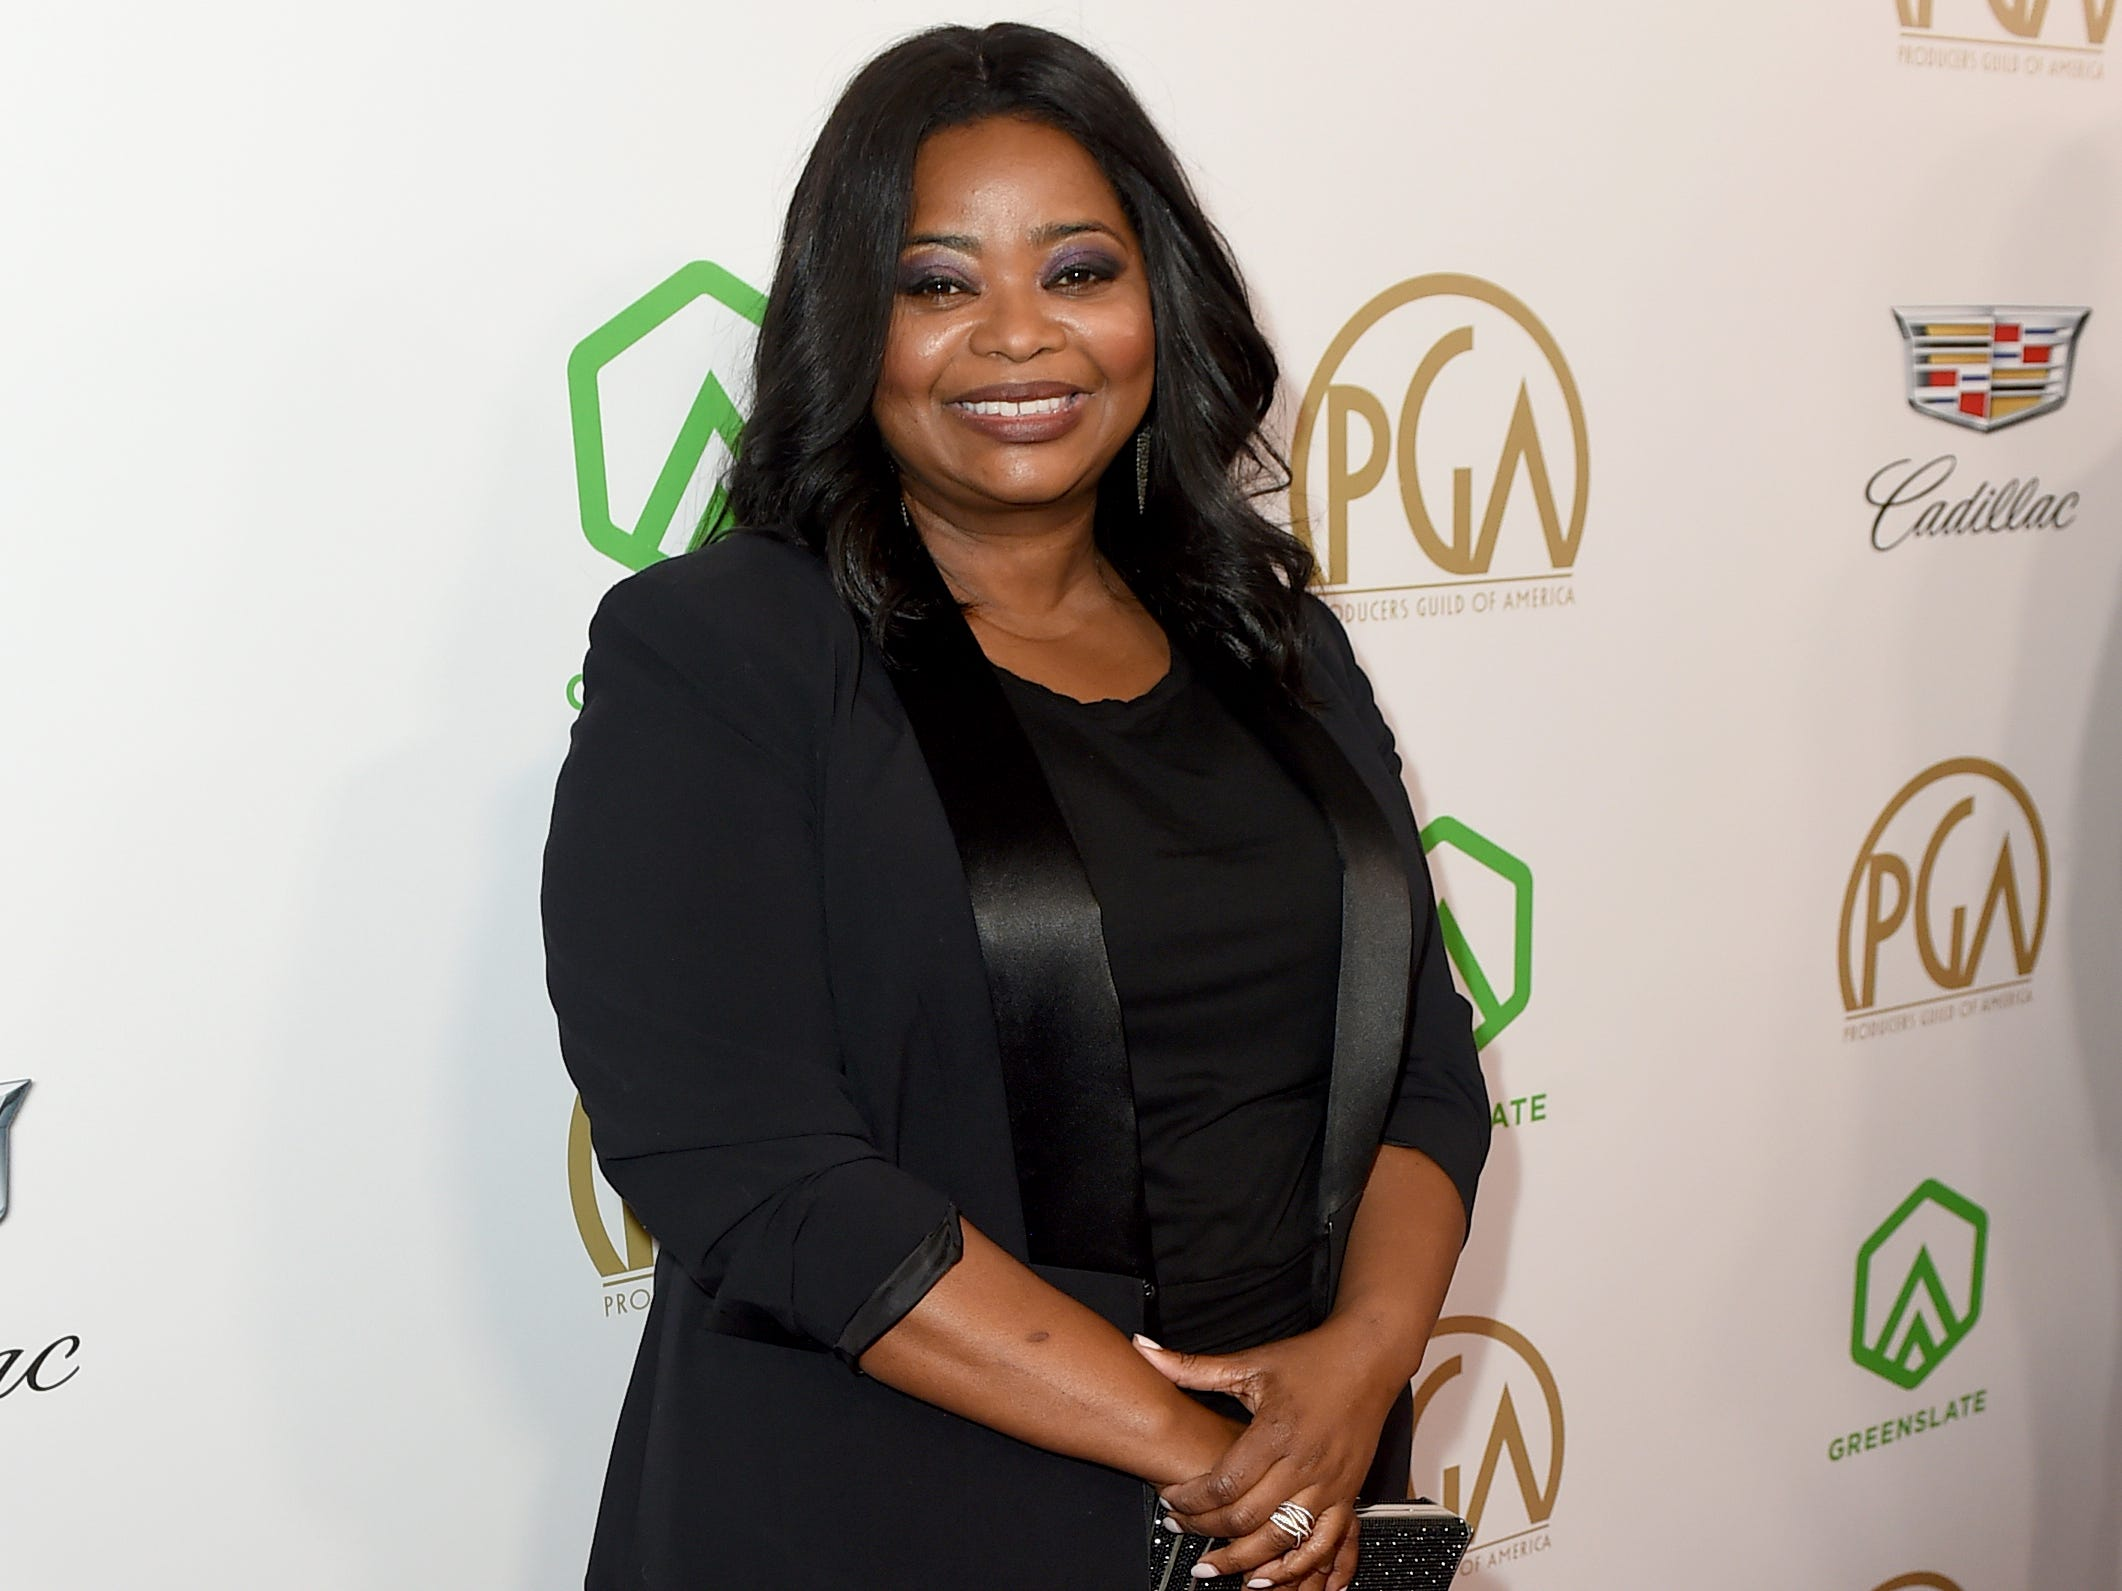 IMAGE DISTRIBUTED FOR PRODUCERS GUILD OF AMERICA - Octavia Spencer arrives at the 30th Producers Guild Awards presented by Cadillac at the Beverly Hilton on Saturday, Jan. 19, 2019, in Beverly Hills, Calif. (Photo by Jordan Strauss/Invision for Producers Guild of America/AP Images) ORG XMIT: CALB118